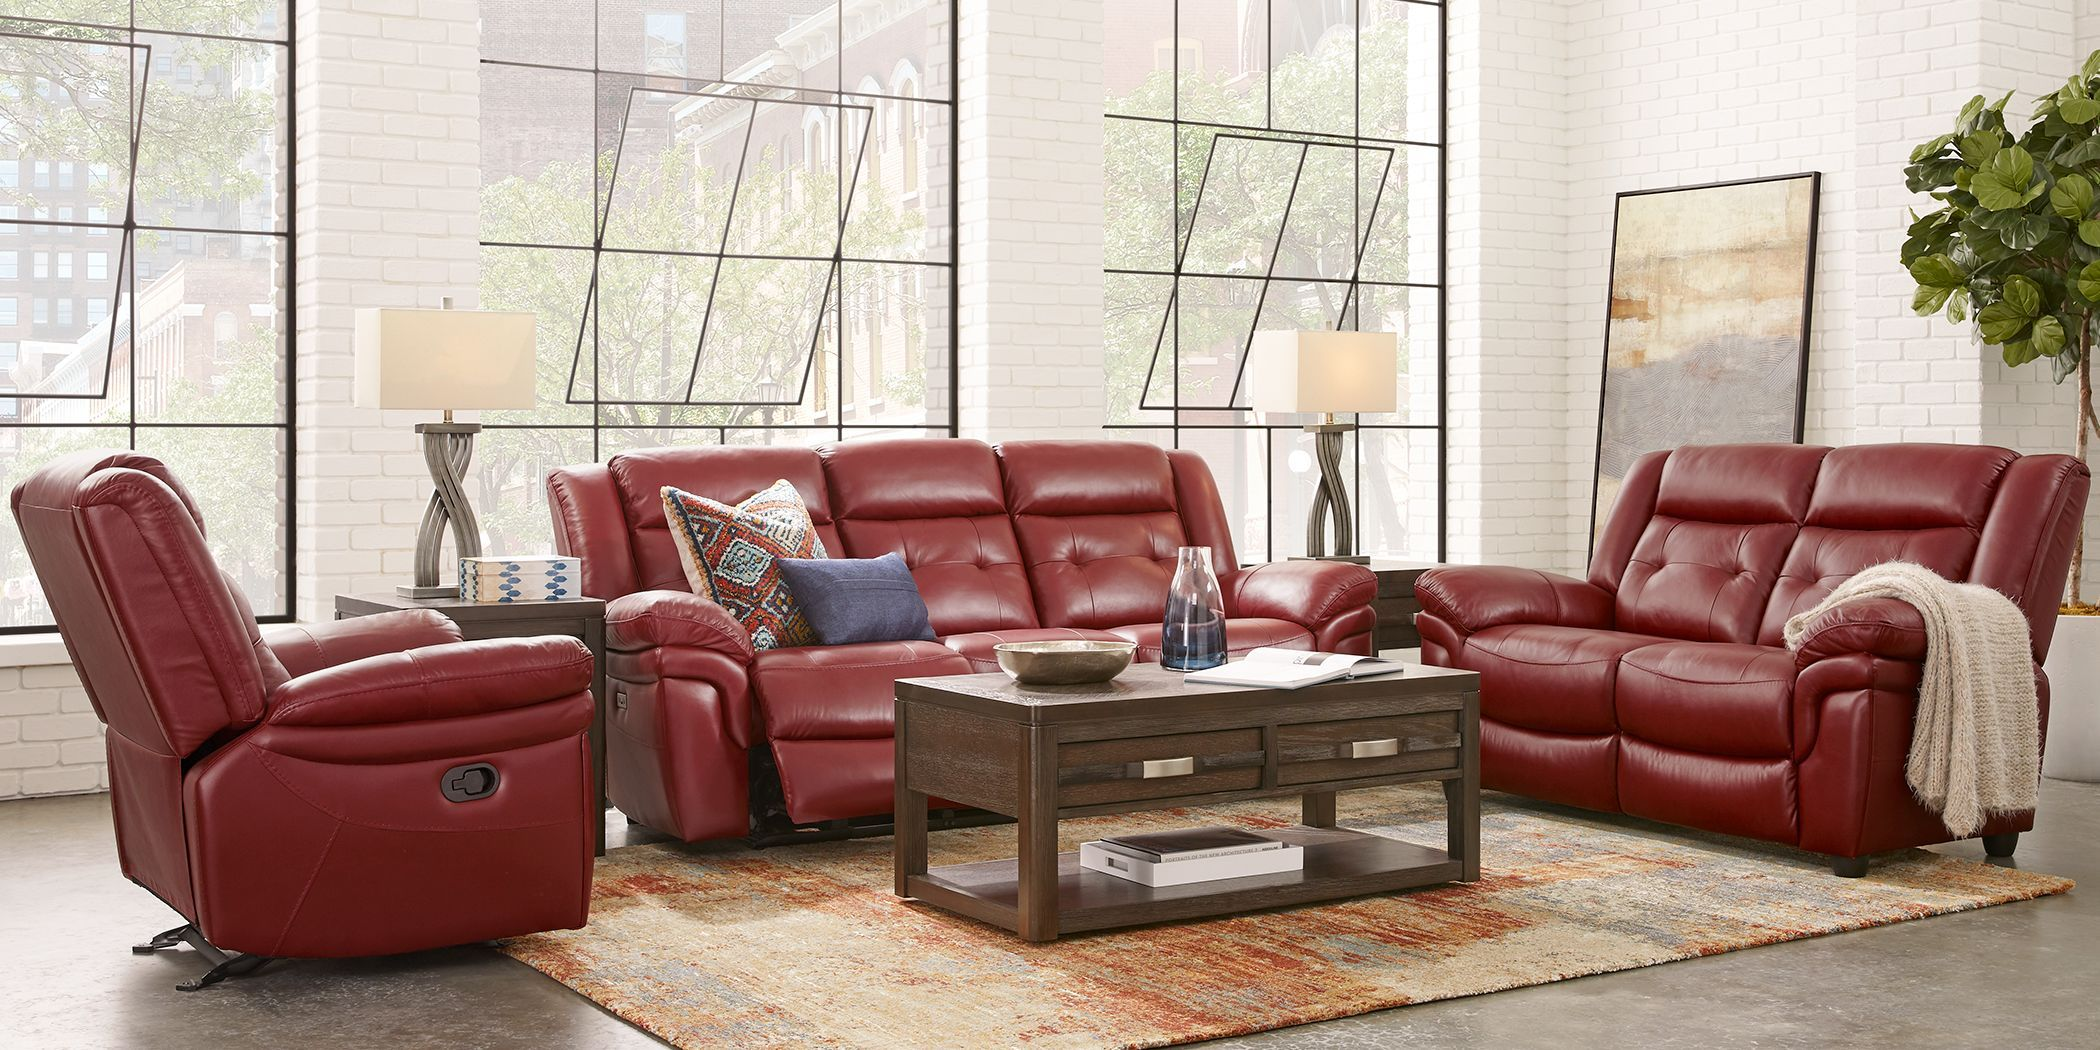 Ventoso Red Leather 3 Pc Living Room With Reclining Sofa Living Room Leather Living Room Sets Furniture Red Leather Couch Living Room 3 pc living room set